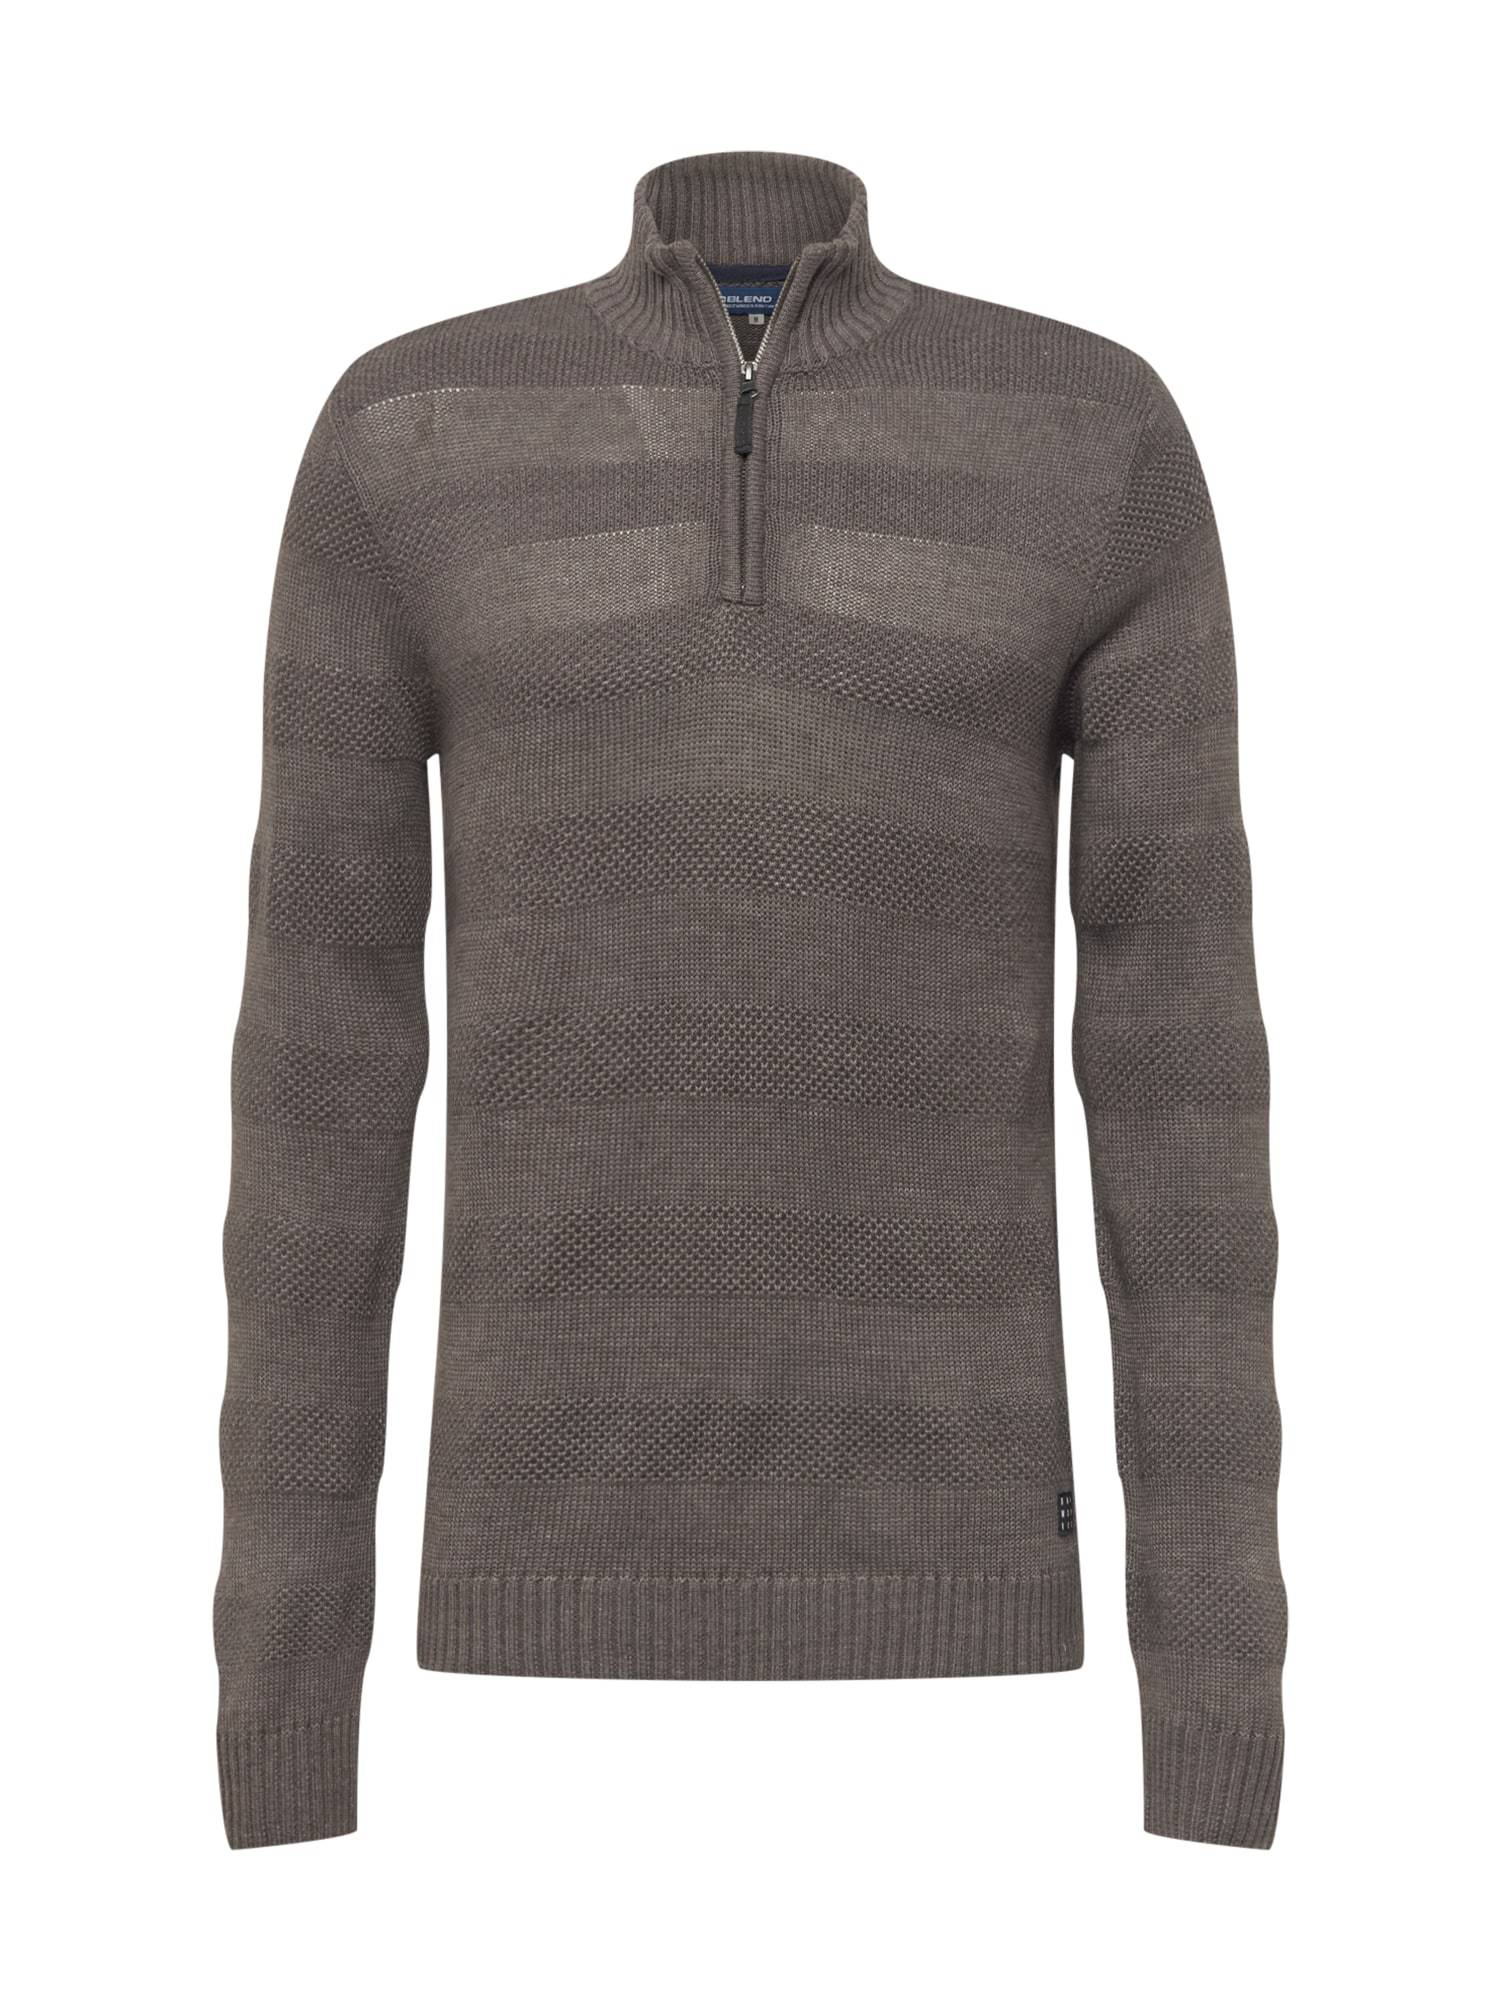 BLEND Pull-over 'Nantes'  - Gris - Taille: L - male